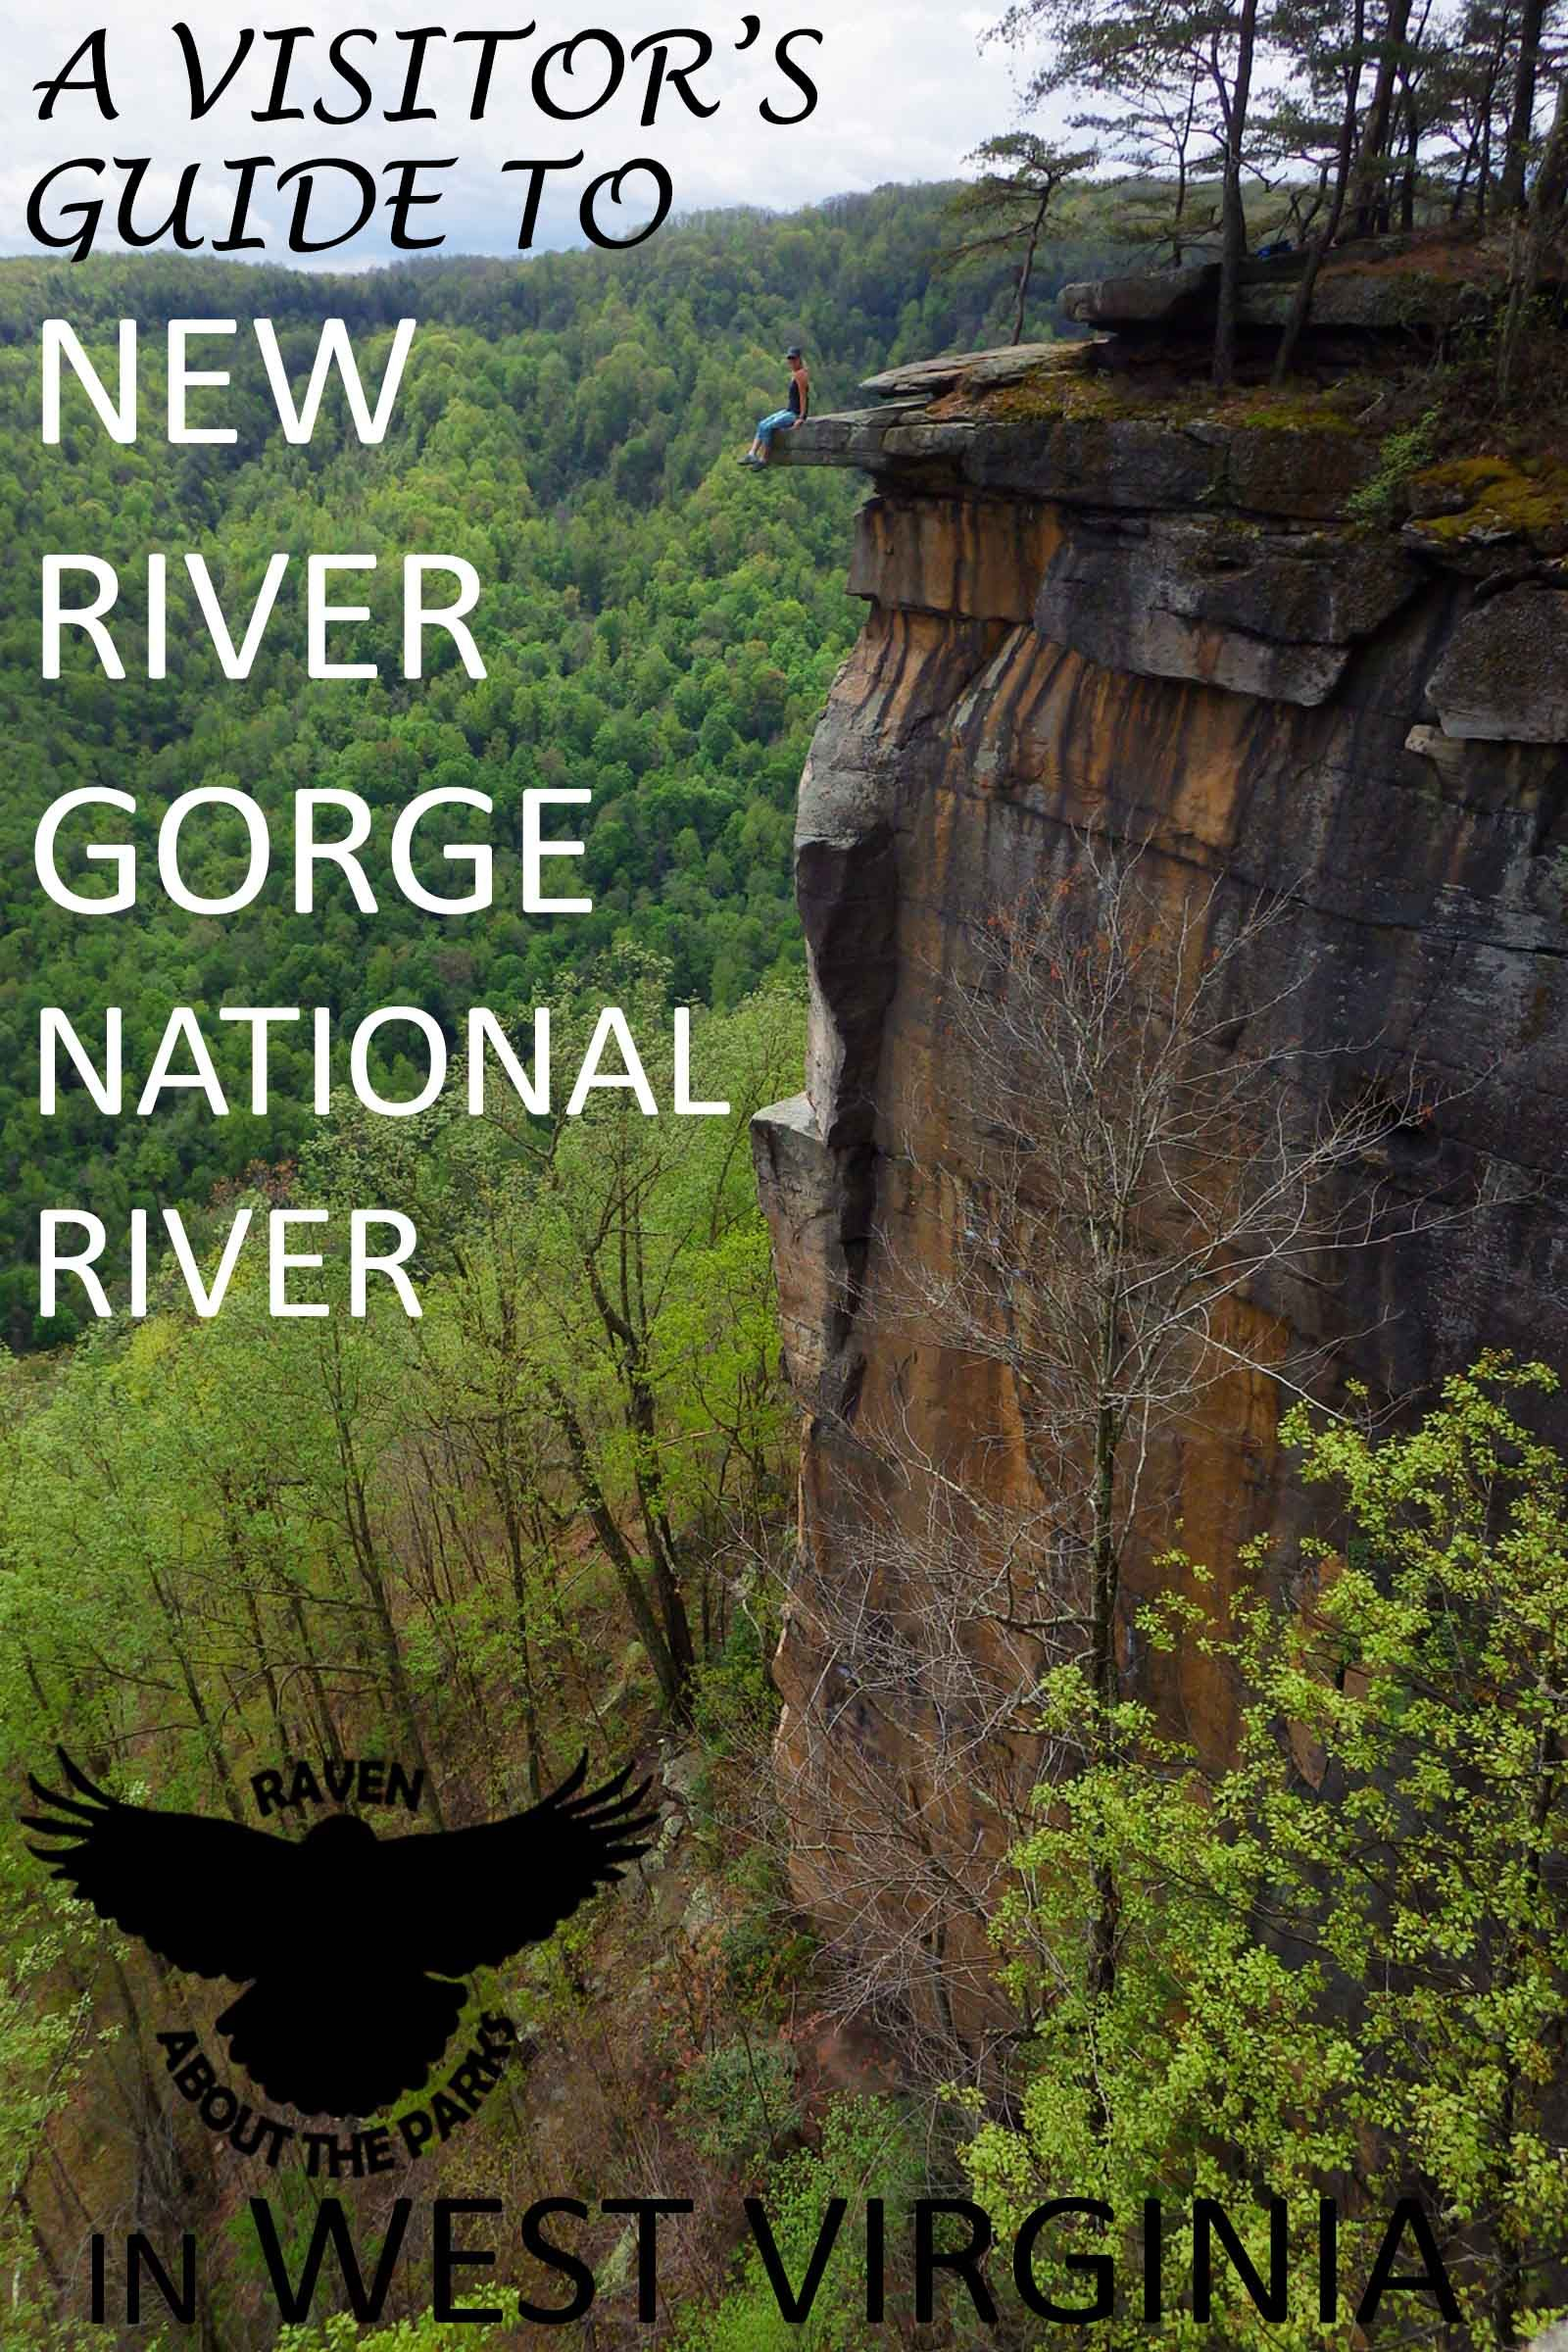 New River Gorge National River, West Virginia #westvirginia